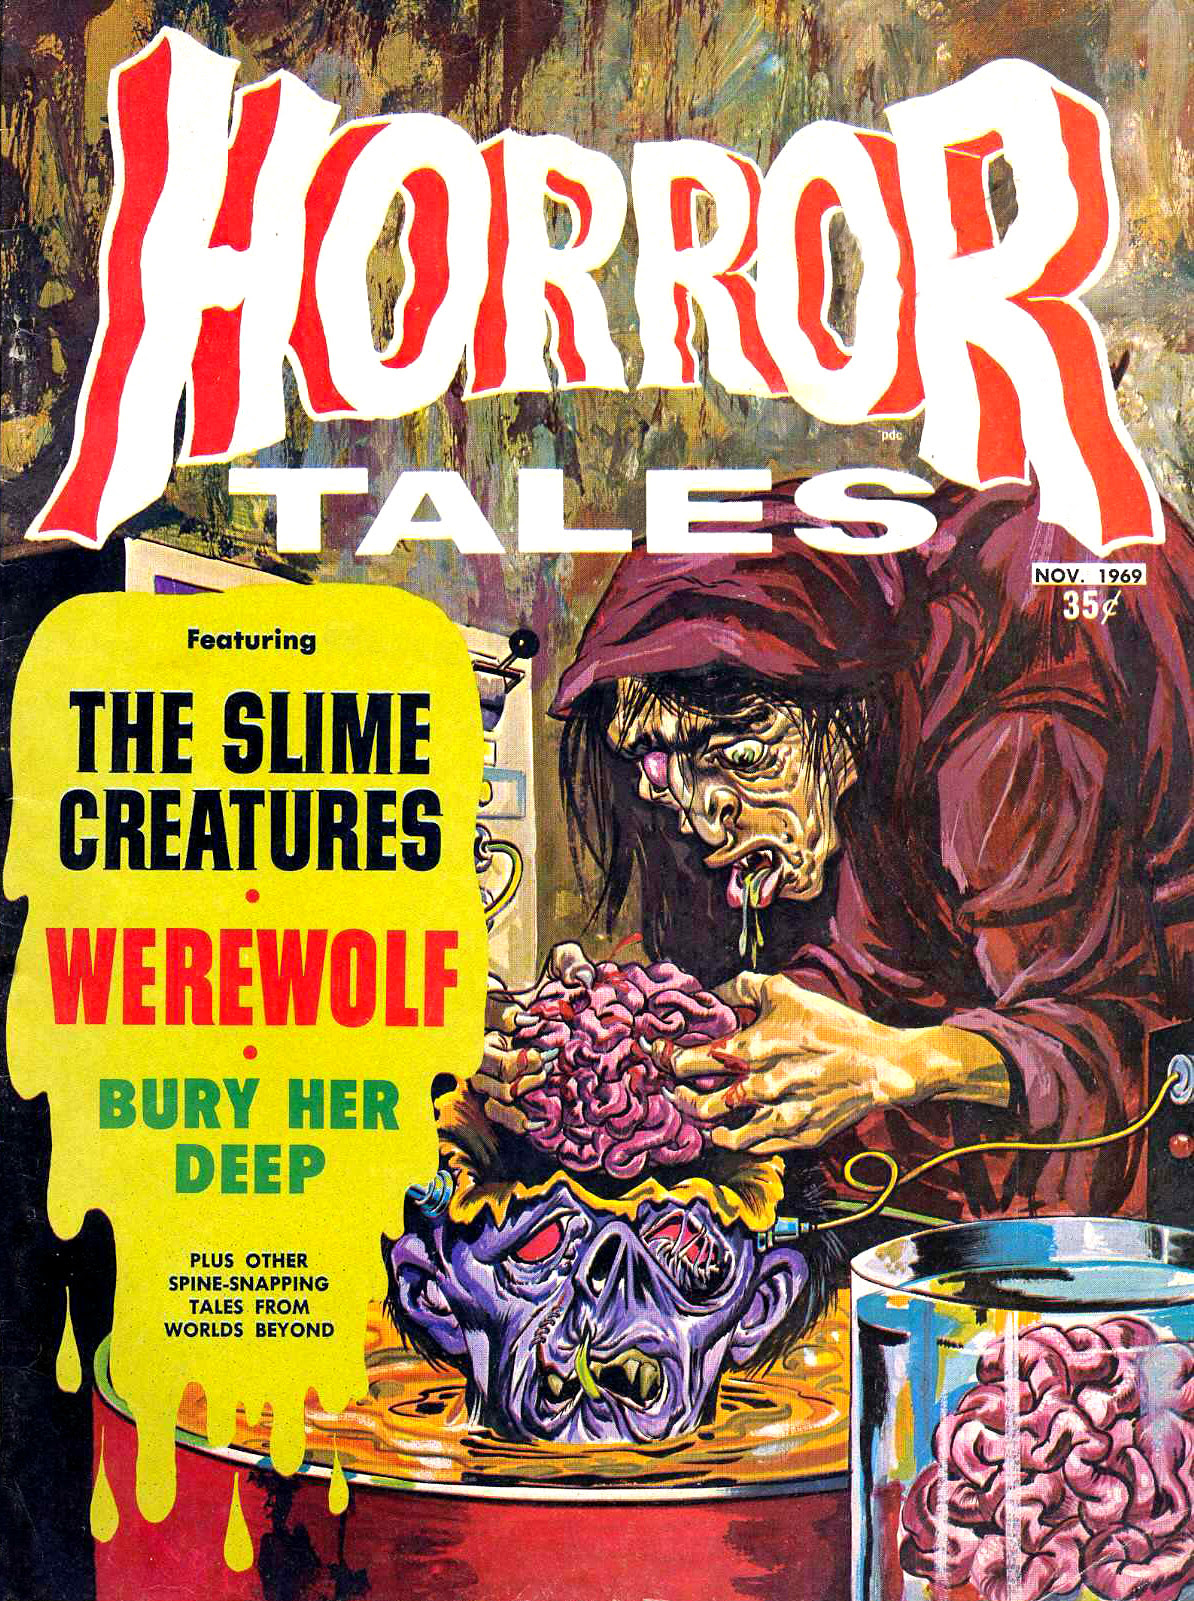 Horror Tales - Vol.1 #9 (Eerie Publications, 1969)